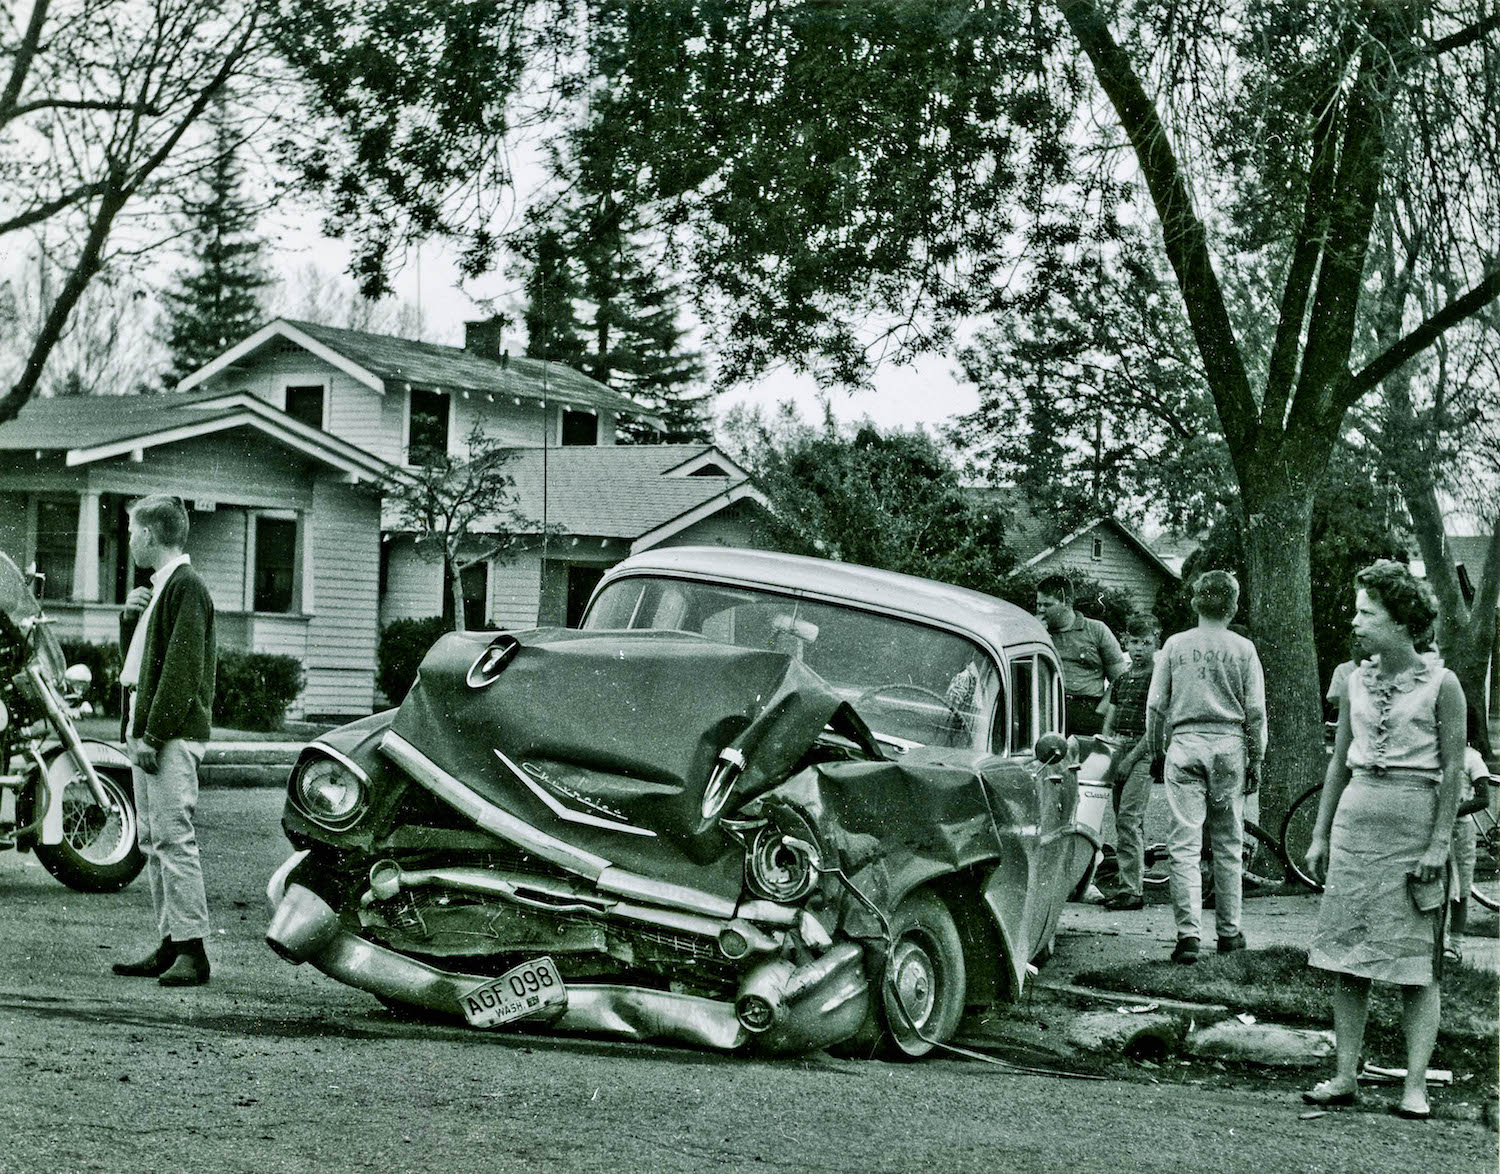 Chevy Chevelle 2016 >> Old Auto Accidents in Fresno (1960 - 1966) - Flashbak